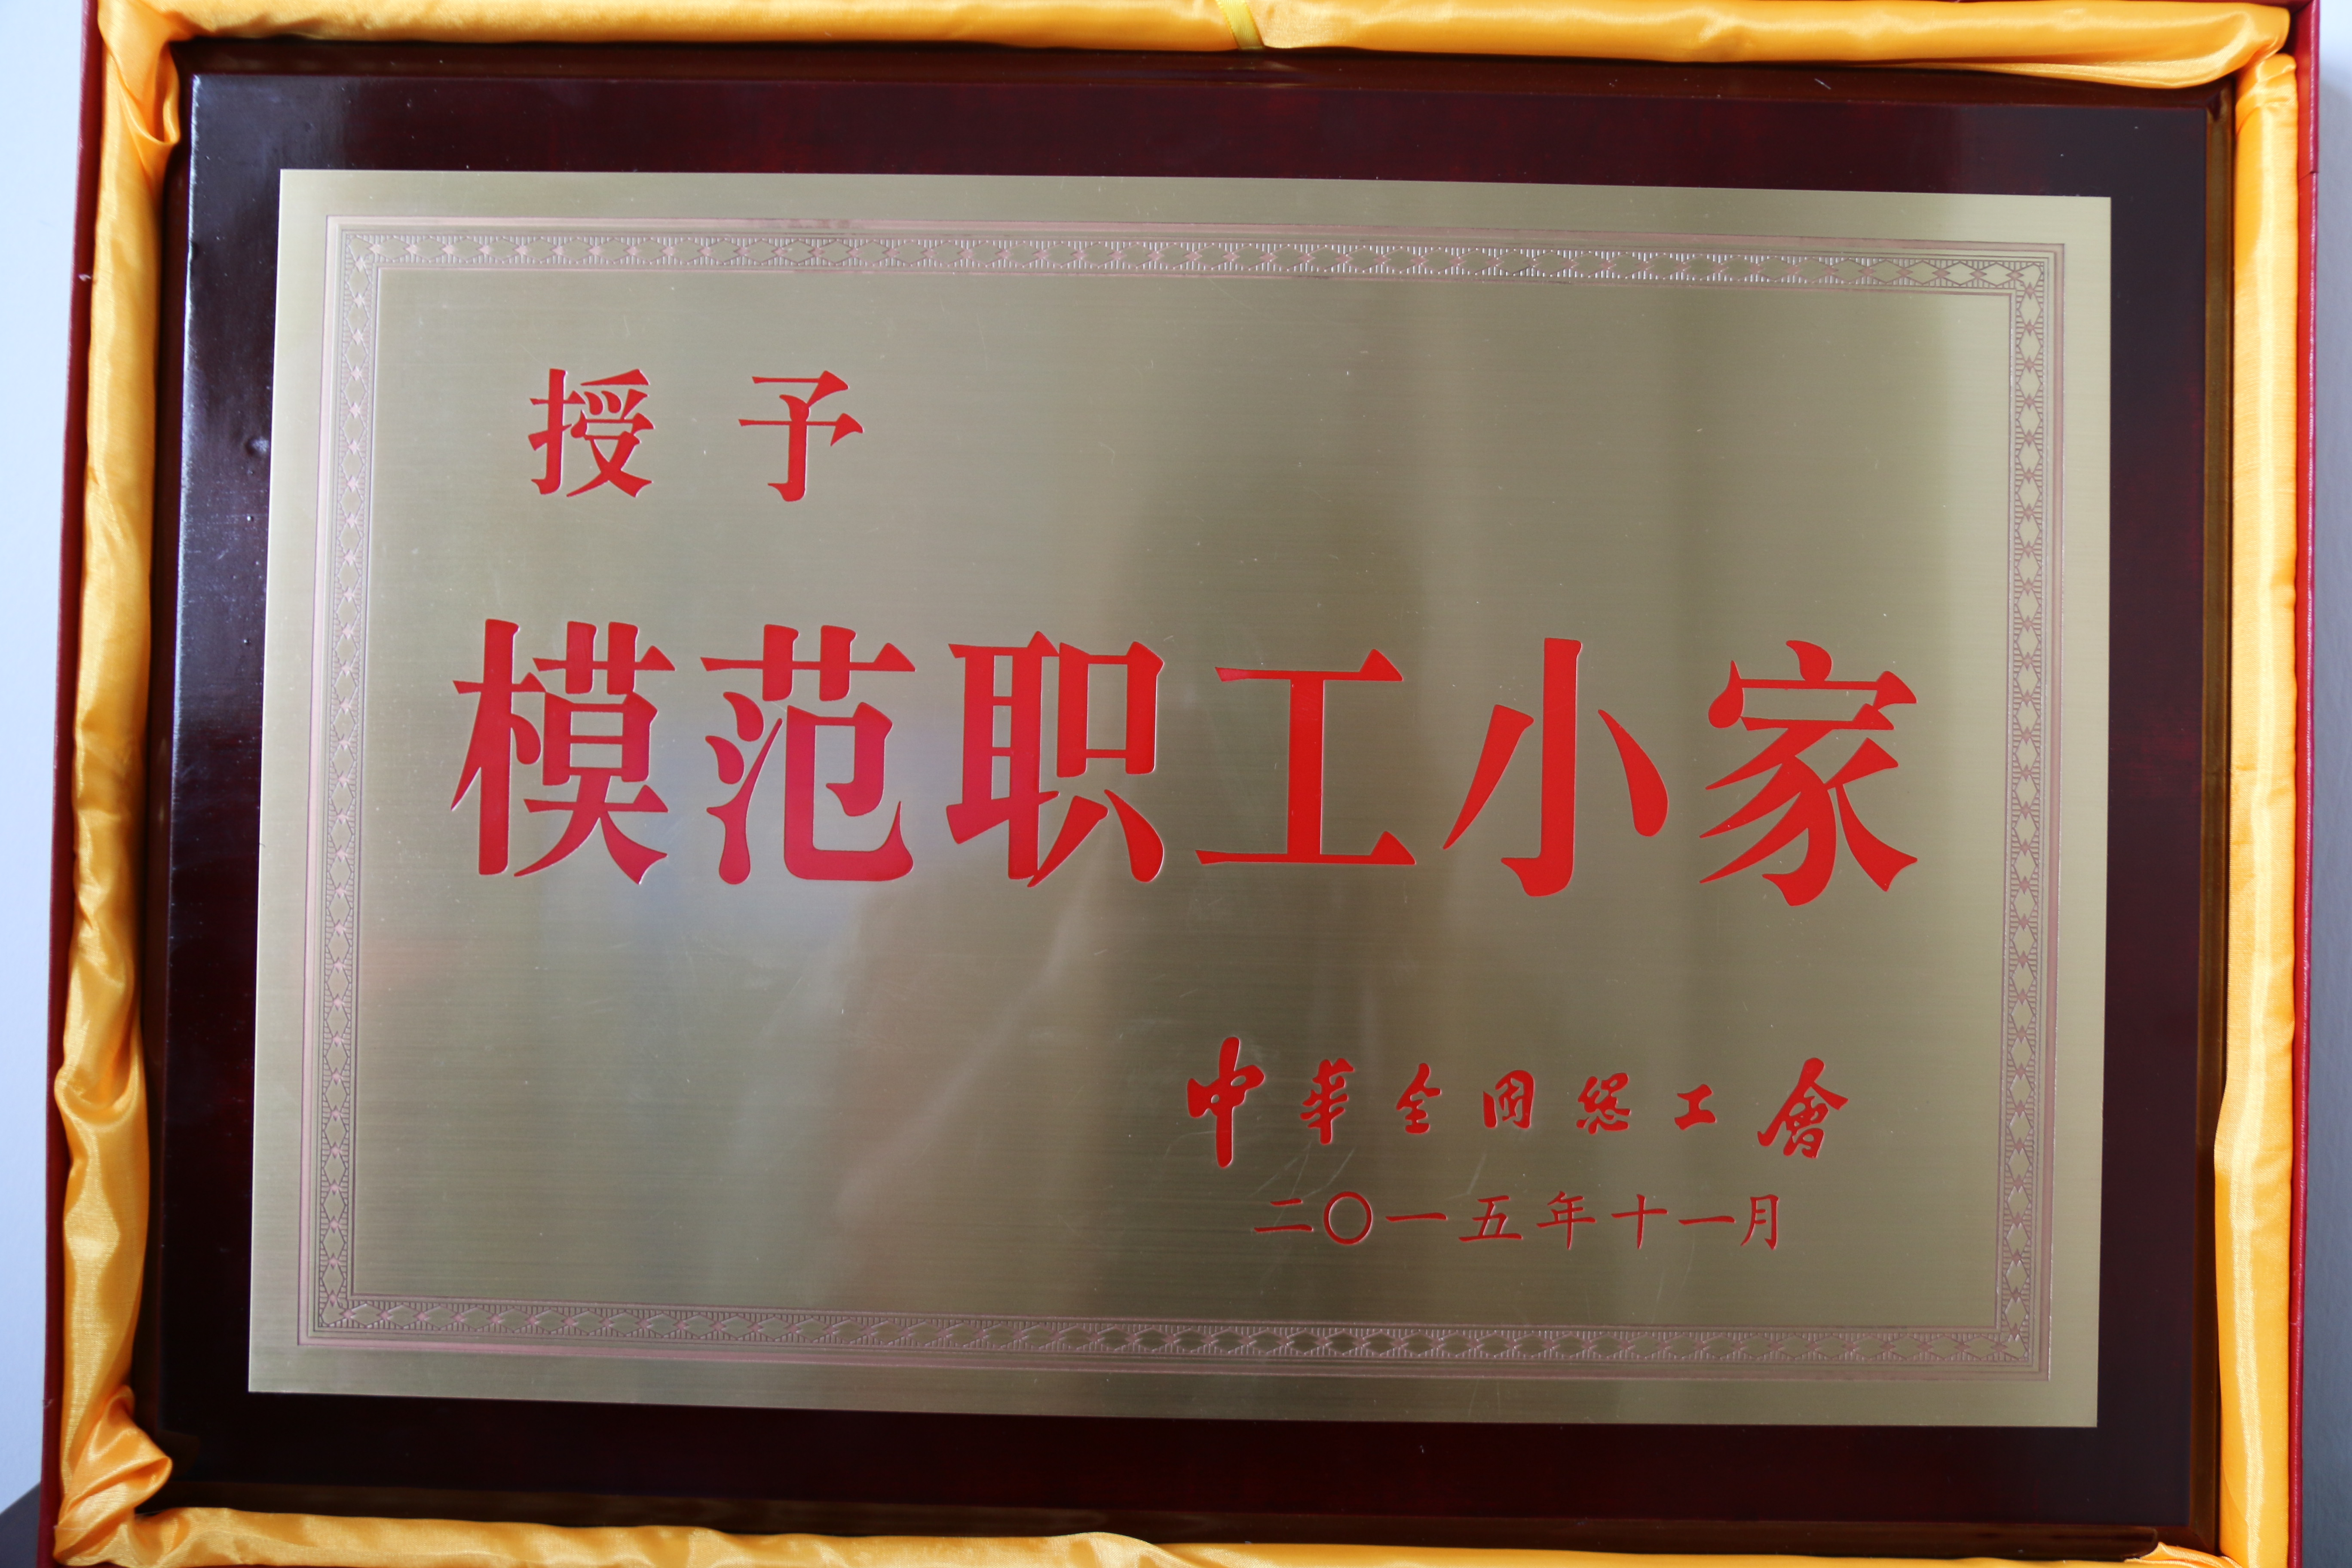 The Jiama Mine was awarded the honorable title of Model Family for Employees